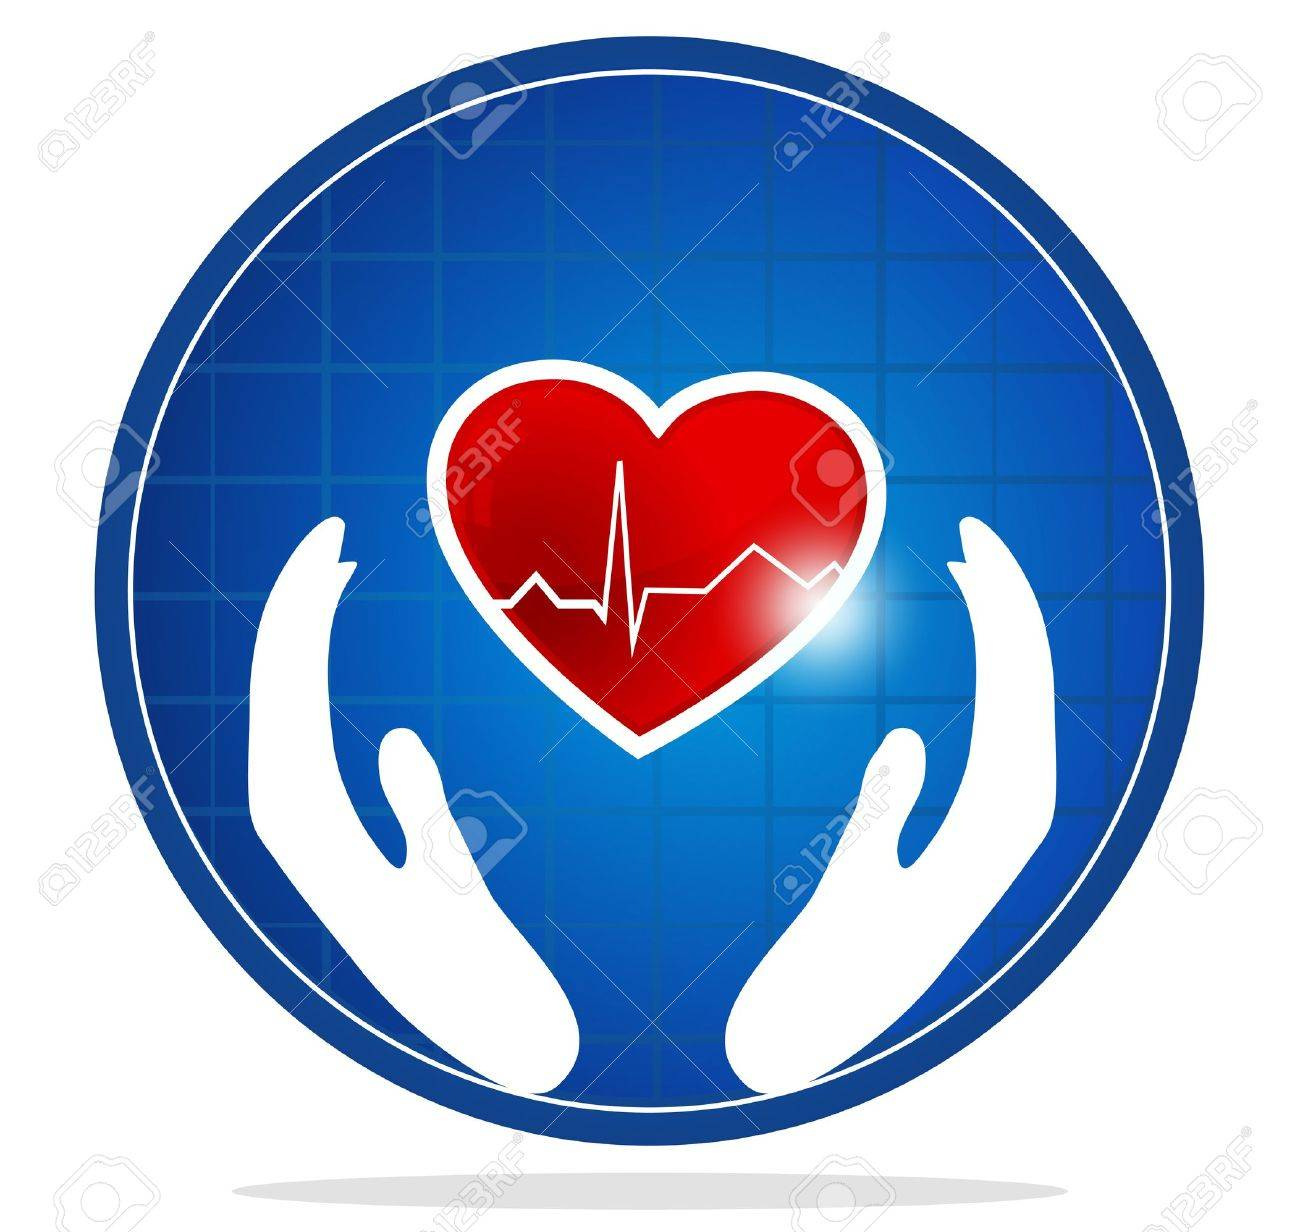 Cardiology and heart symbol  The heart shape symbolizes healthy heart beating and healthy blood circulation system  Hands symbolizes the healing and protection of human heart Stock Vector - 15862180